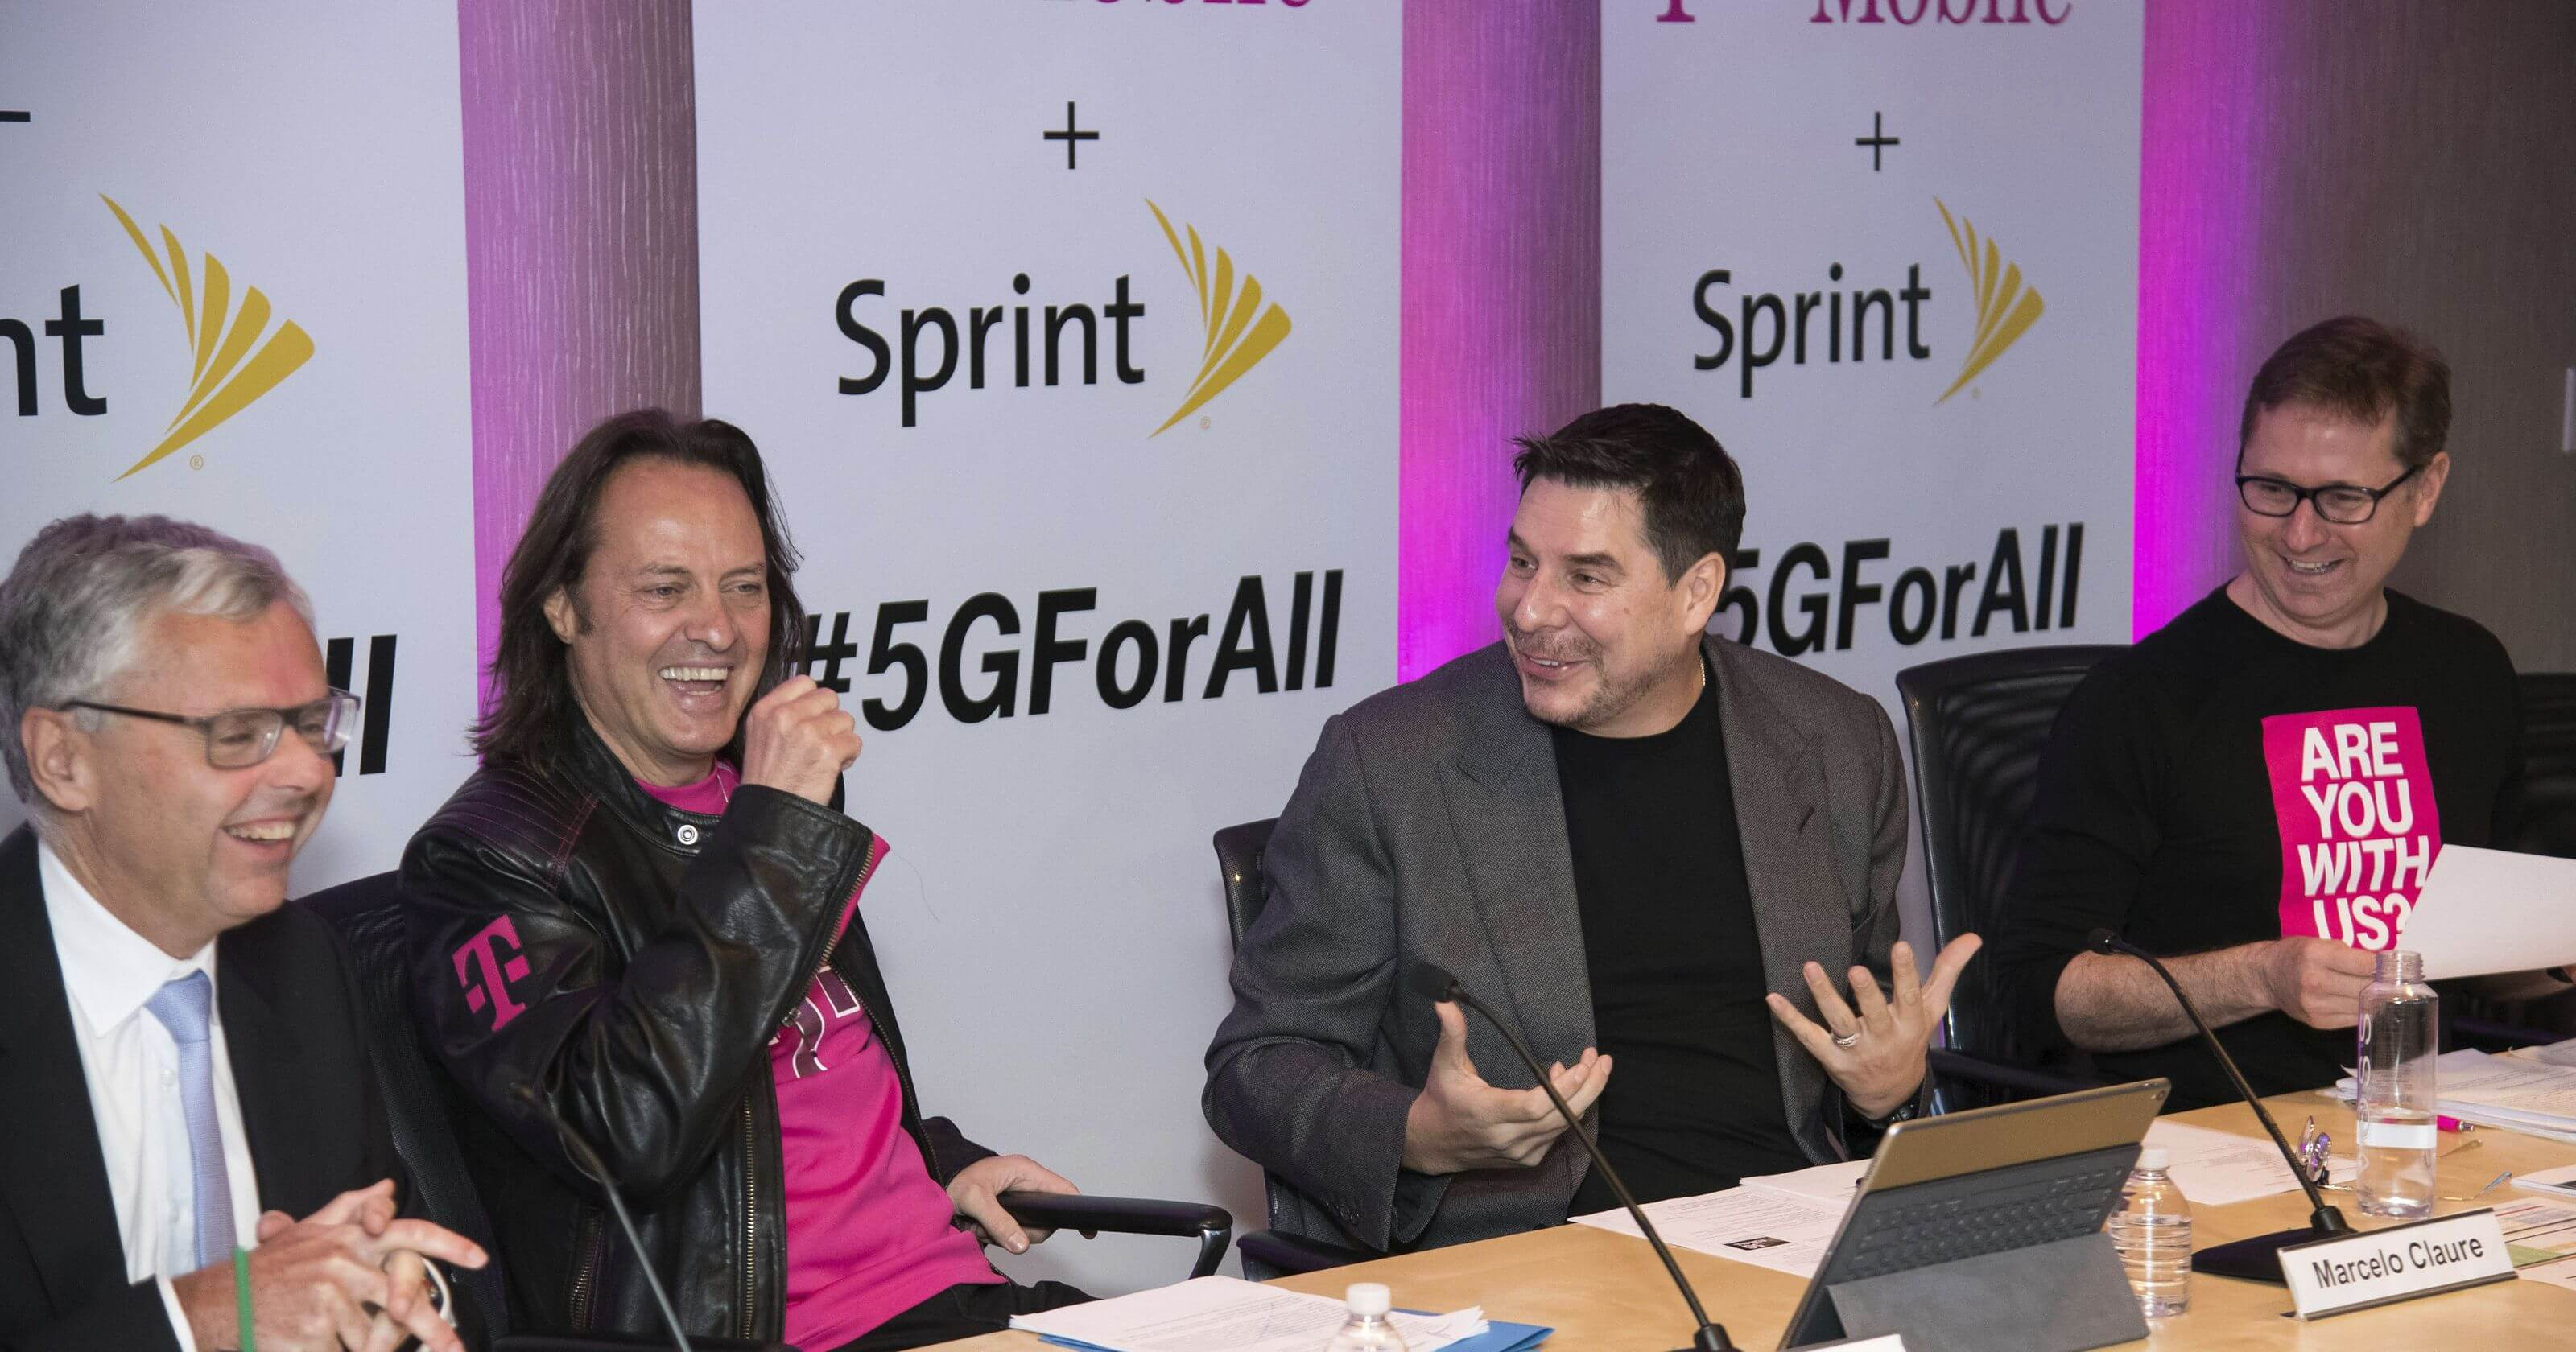 Sprint, T-Mobile Merger Would Mean Lower Wages, Study Finds